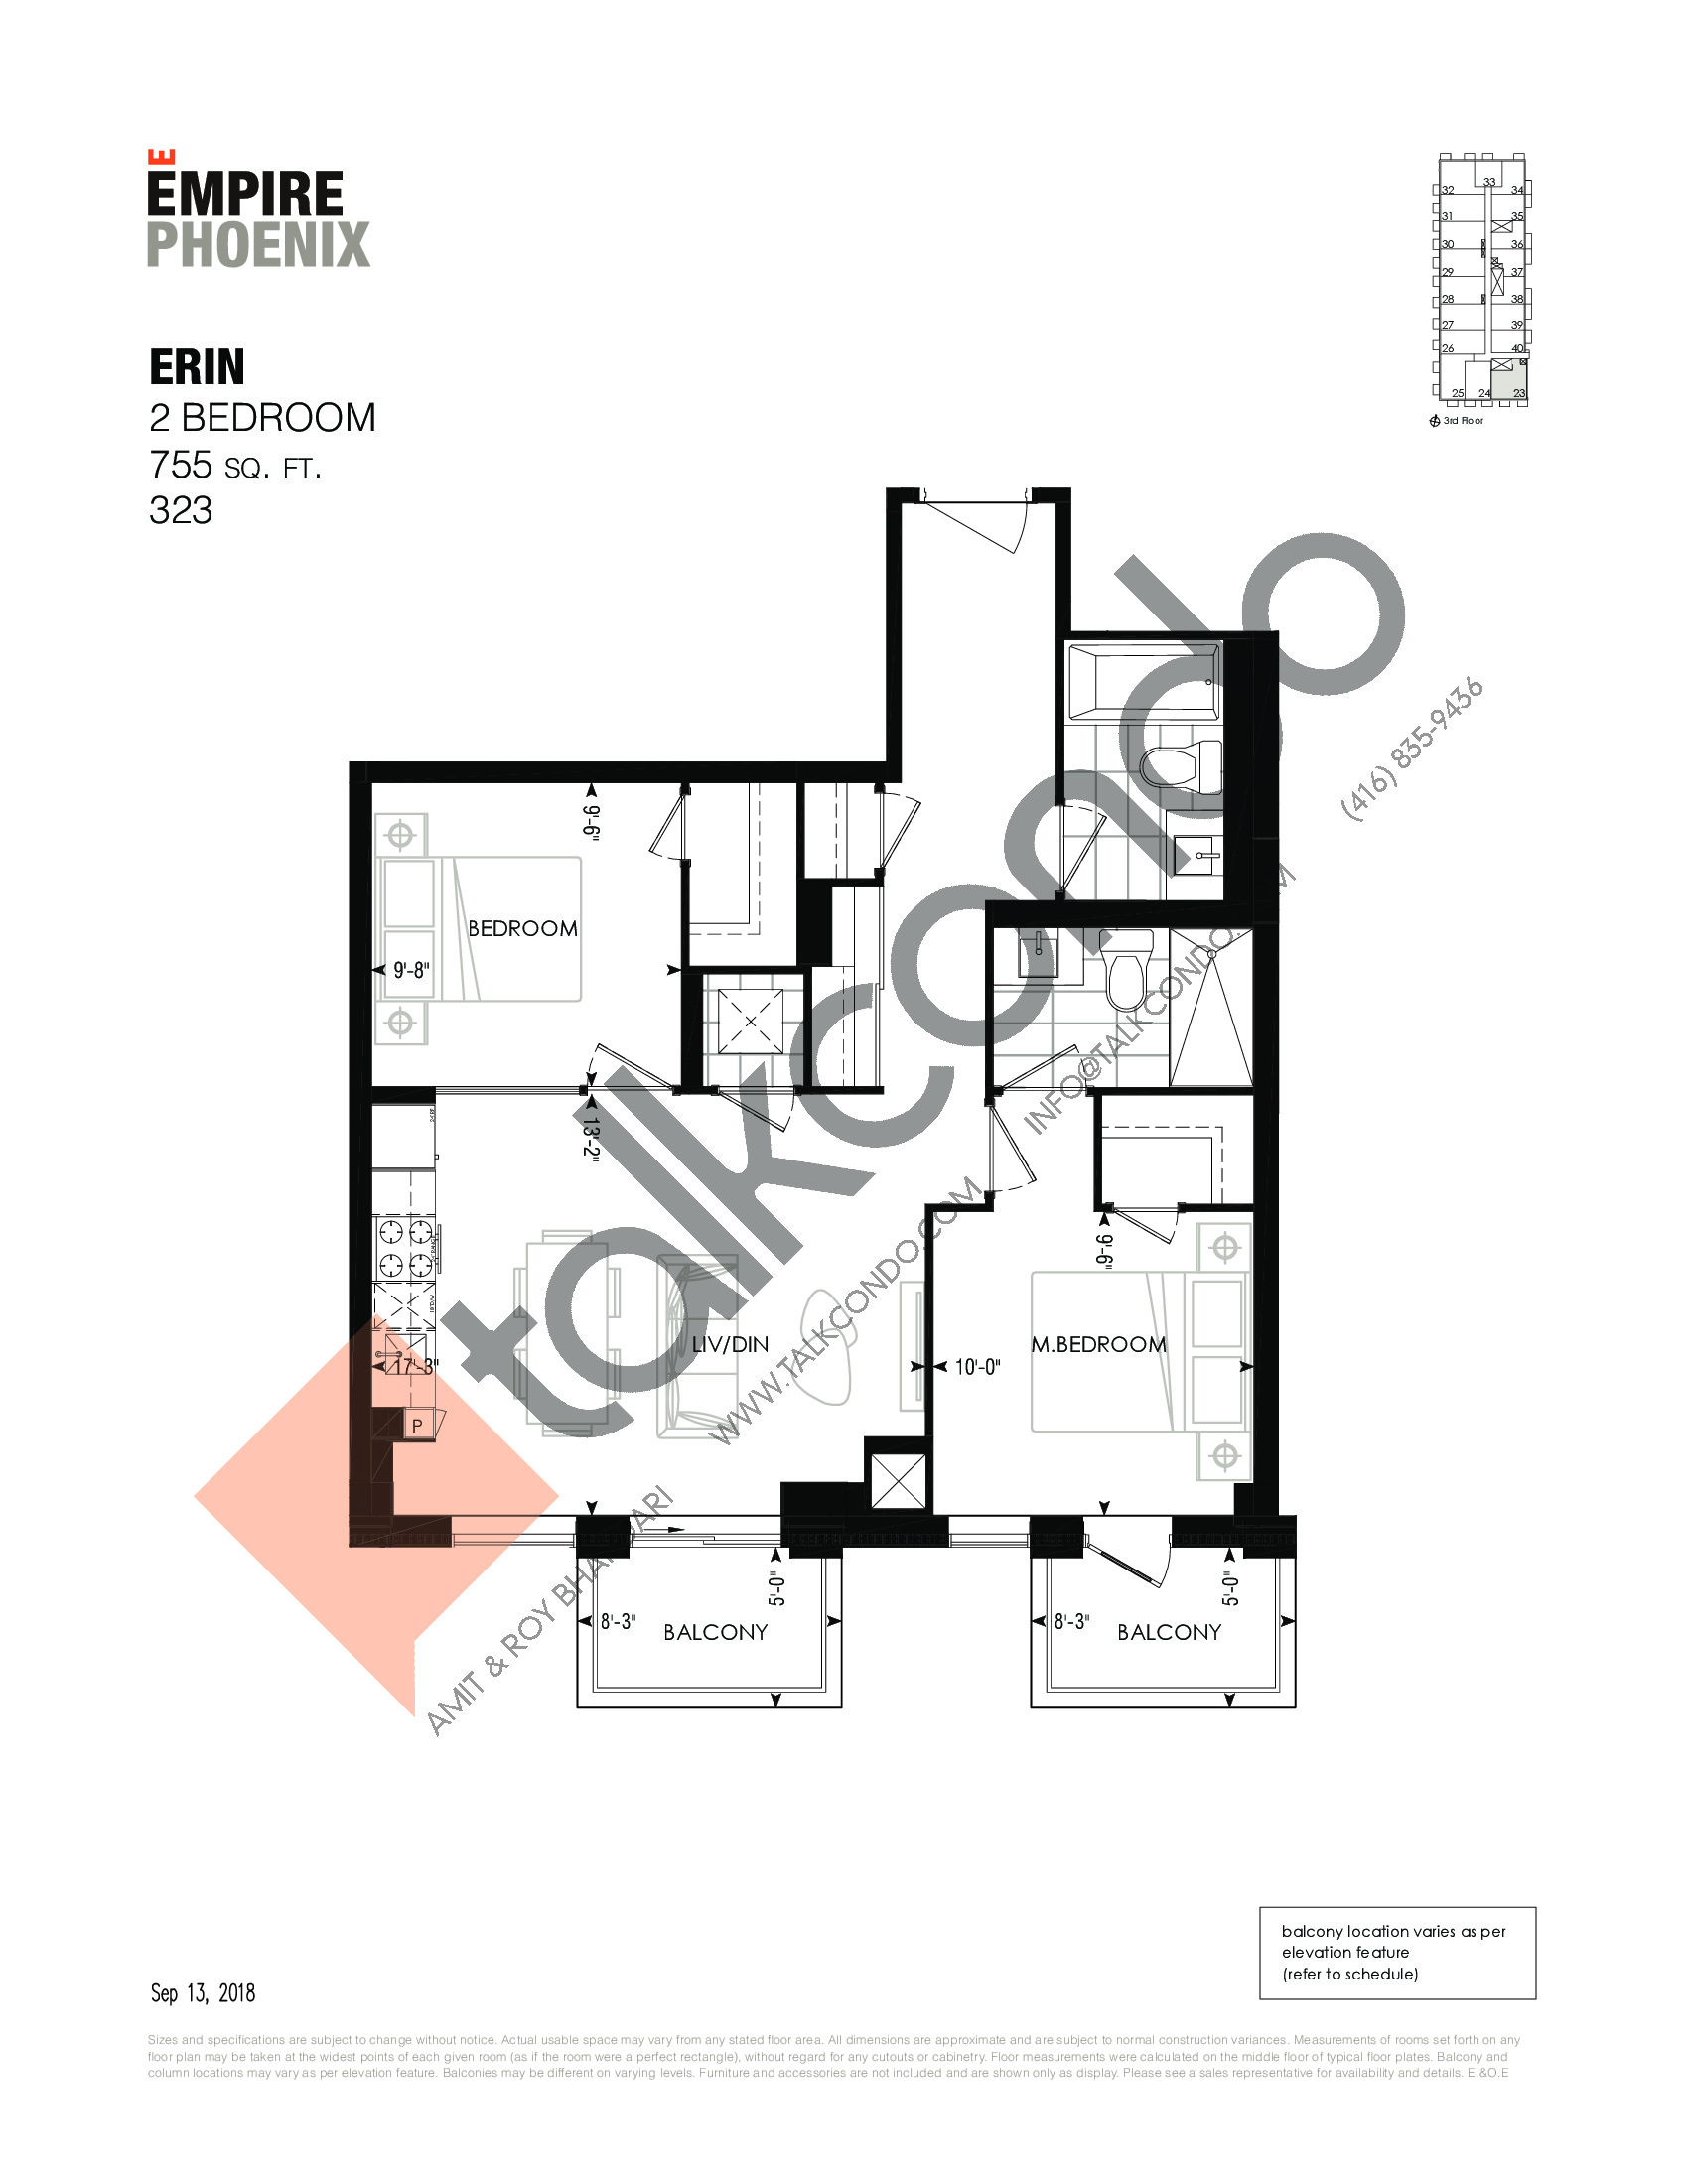 Erin Floor Plan at Empire Phoenix Phase 2 Condos - 755 sq.ft